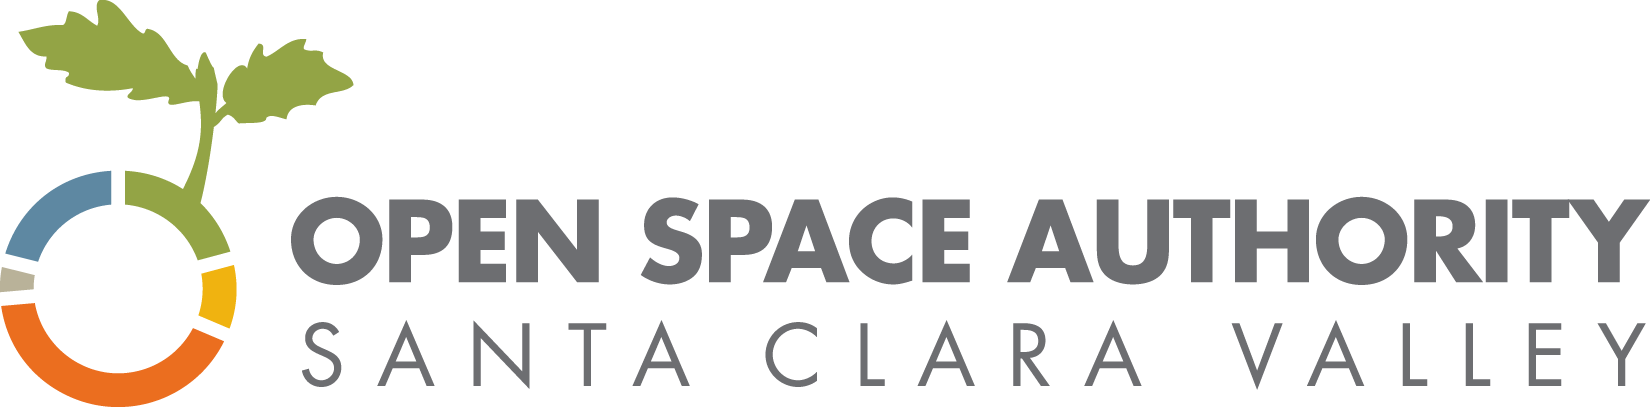 OSA logo - Open Space Authority with circle and leaf